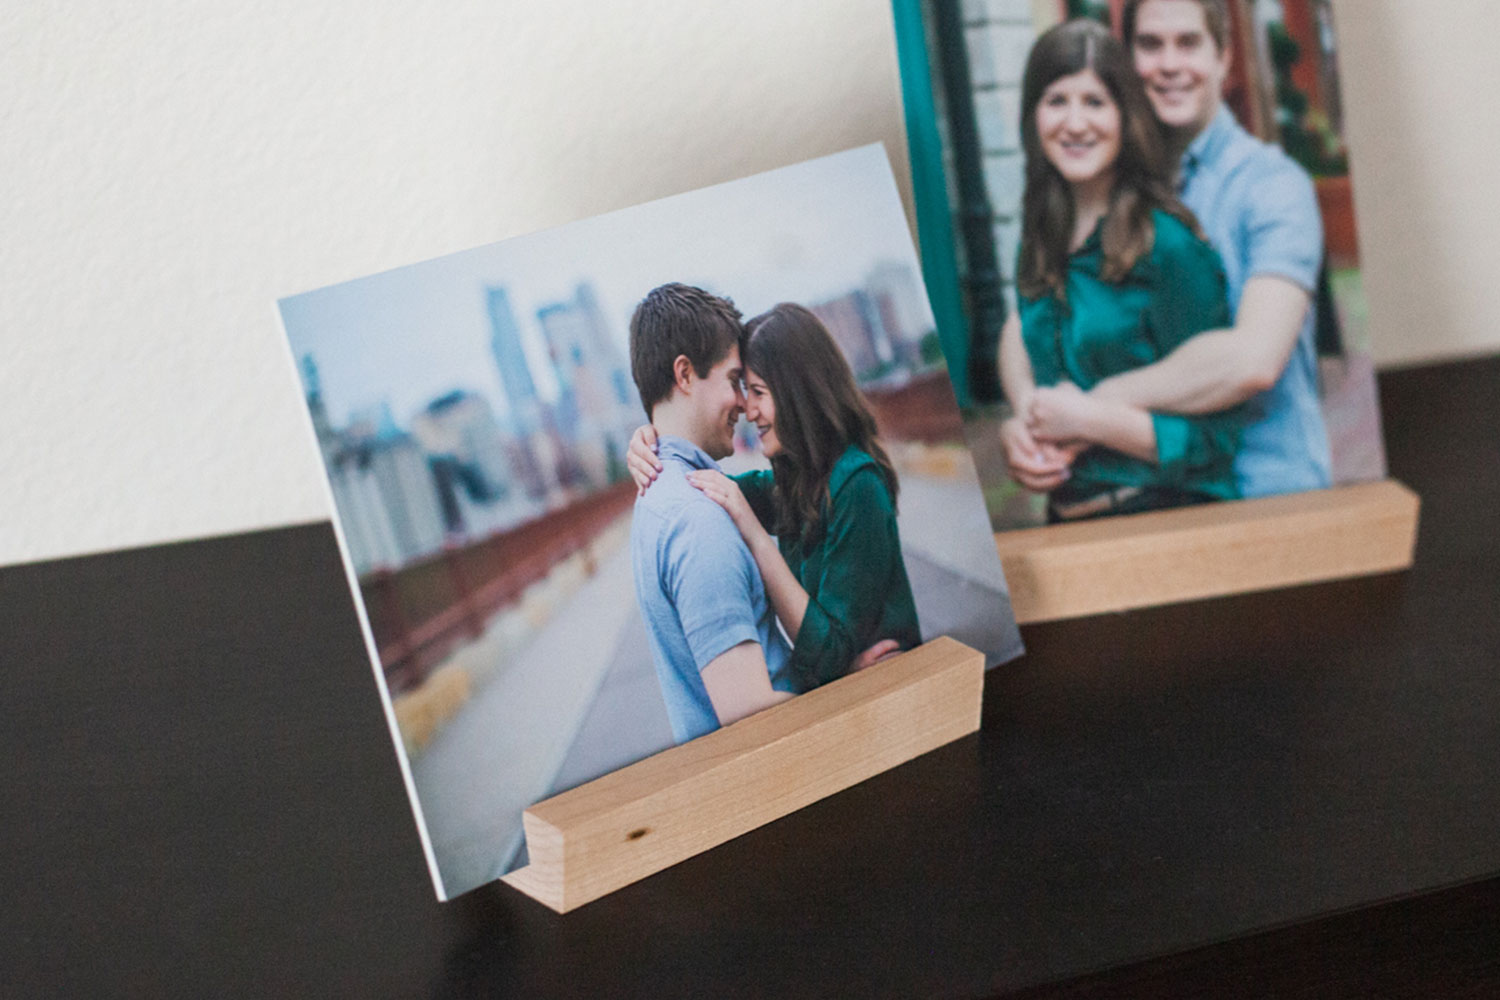 Mounted Photographic Prints in Wooden Display Stands by Laura Leigh Images